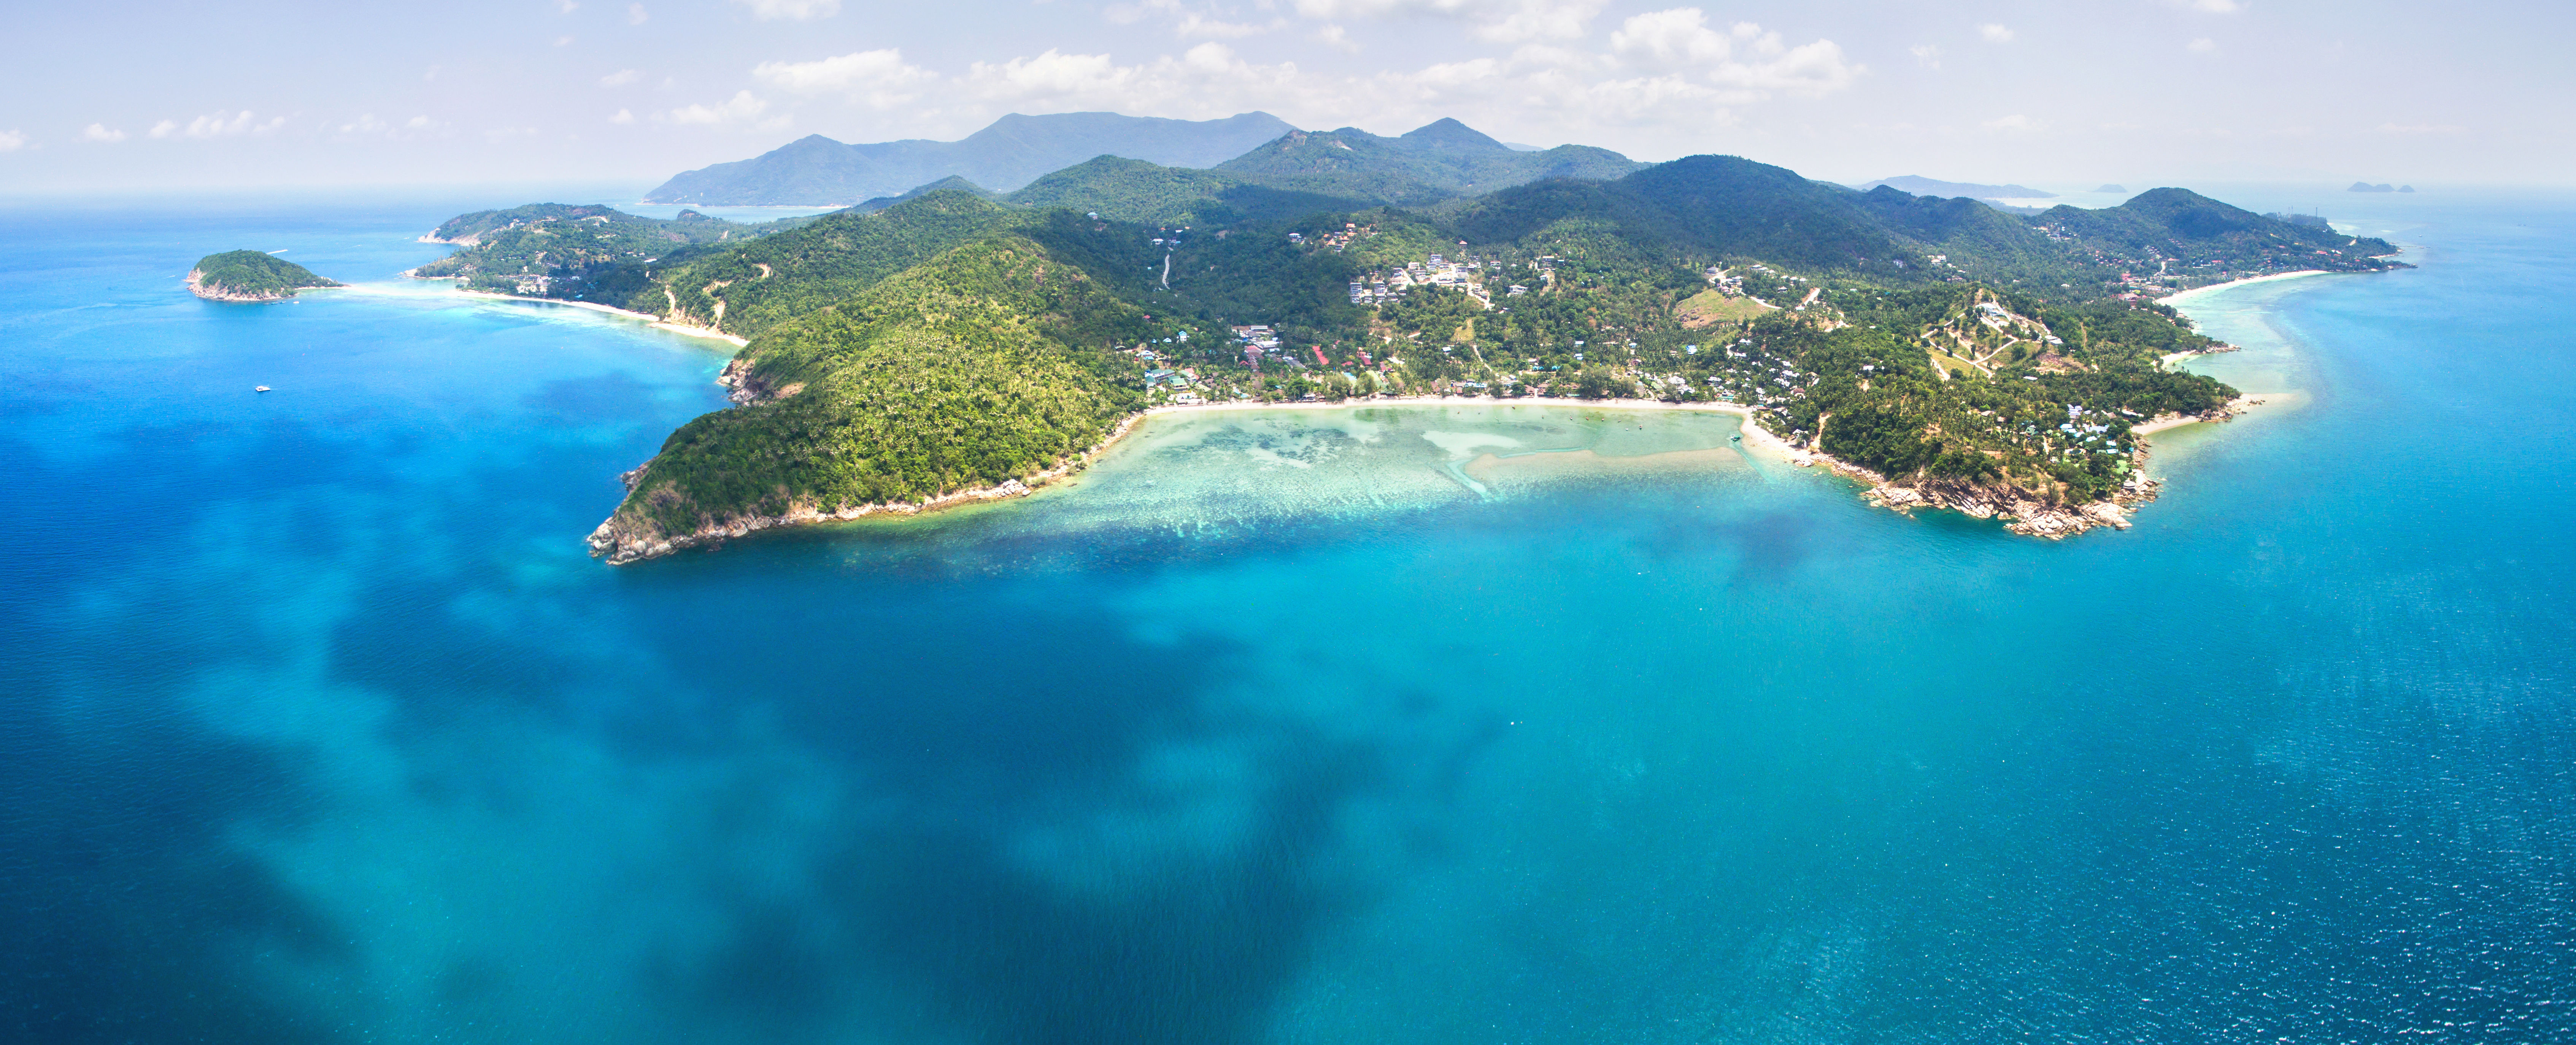 Aerial panoramic view of tropical island of Koh Phangan, Thailand, surrounded by reefs and white sand bays.